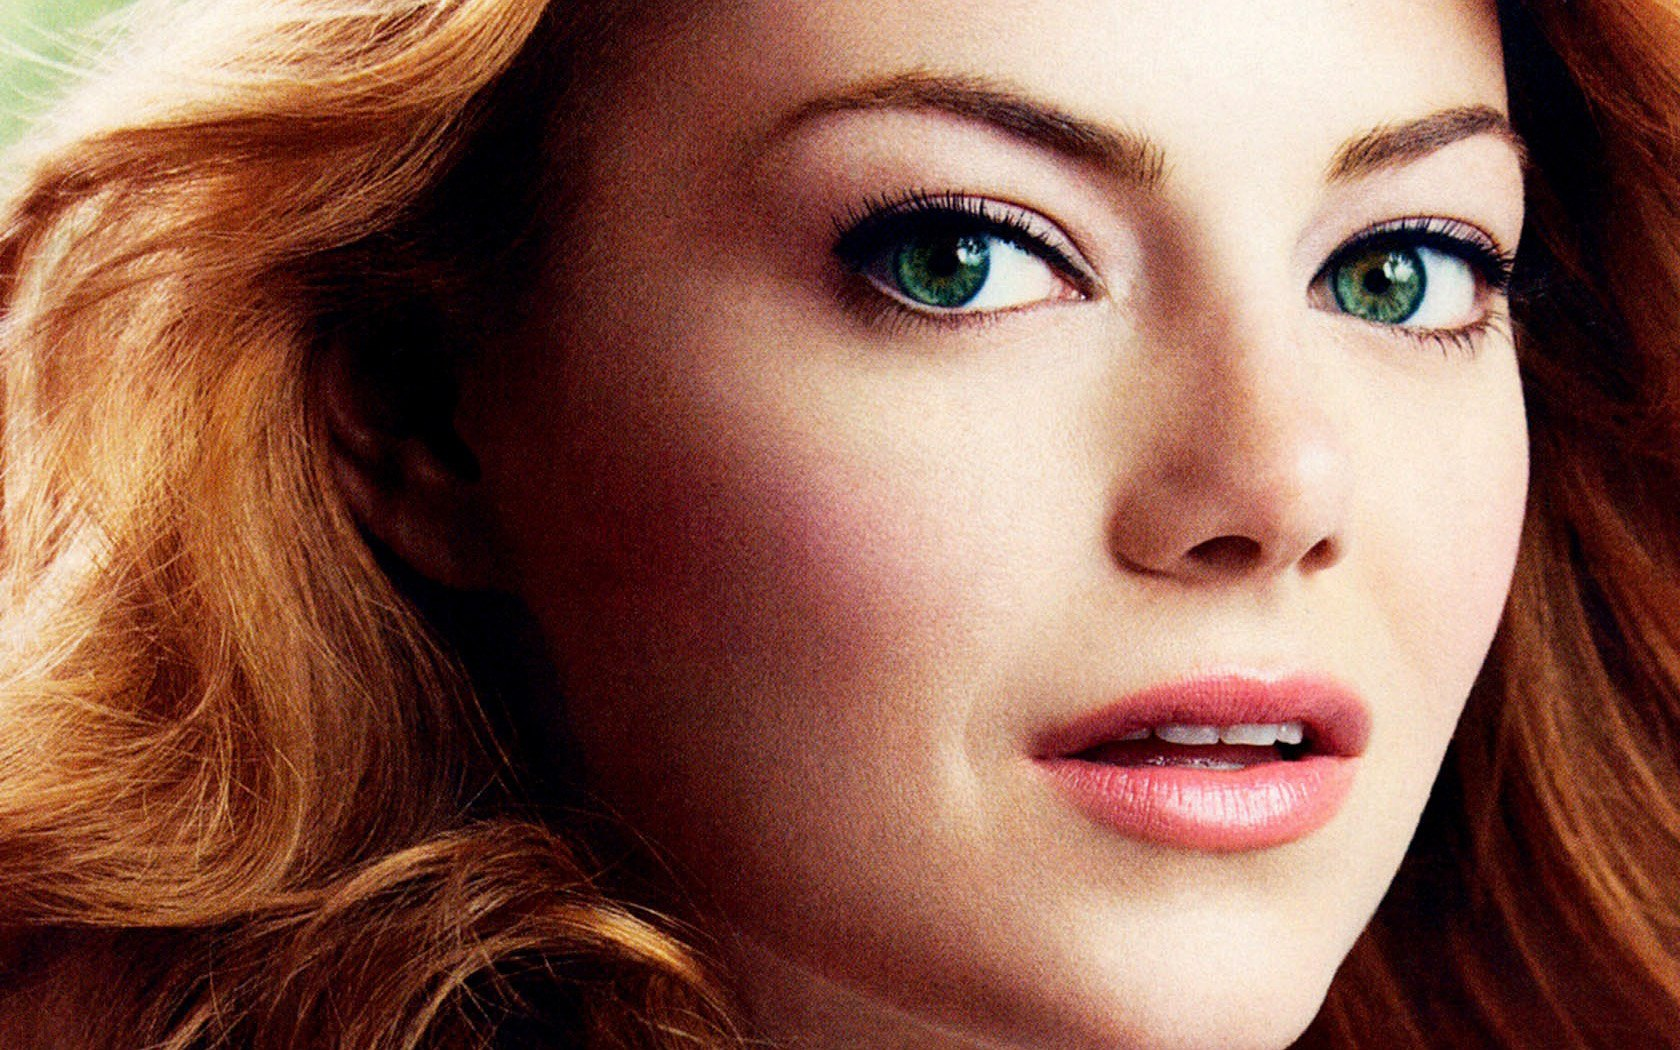 Actress and sexy nerd girl Emma Stone sat down with American Cosmo mag to talk beauty and her responses show us and her fans what a down-to-earth cool chick ...